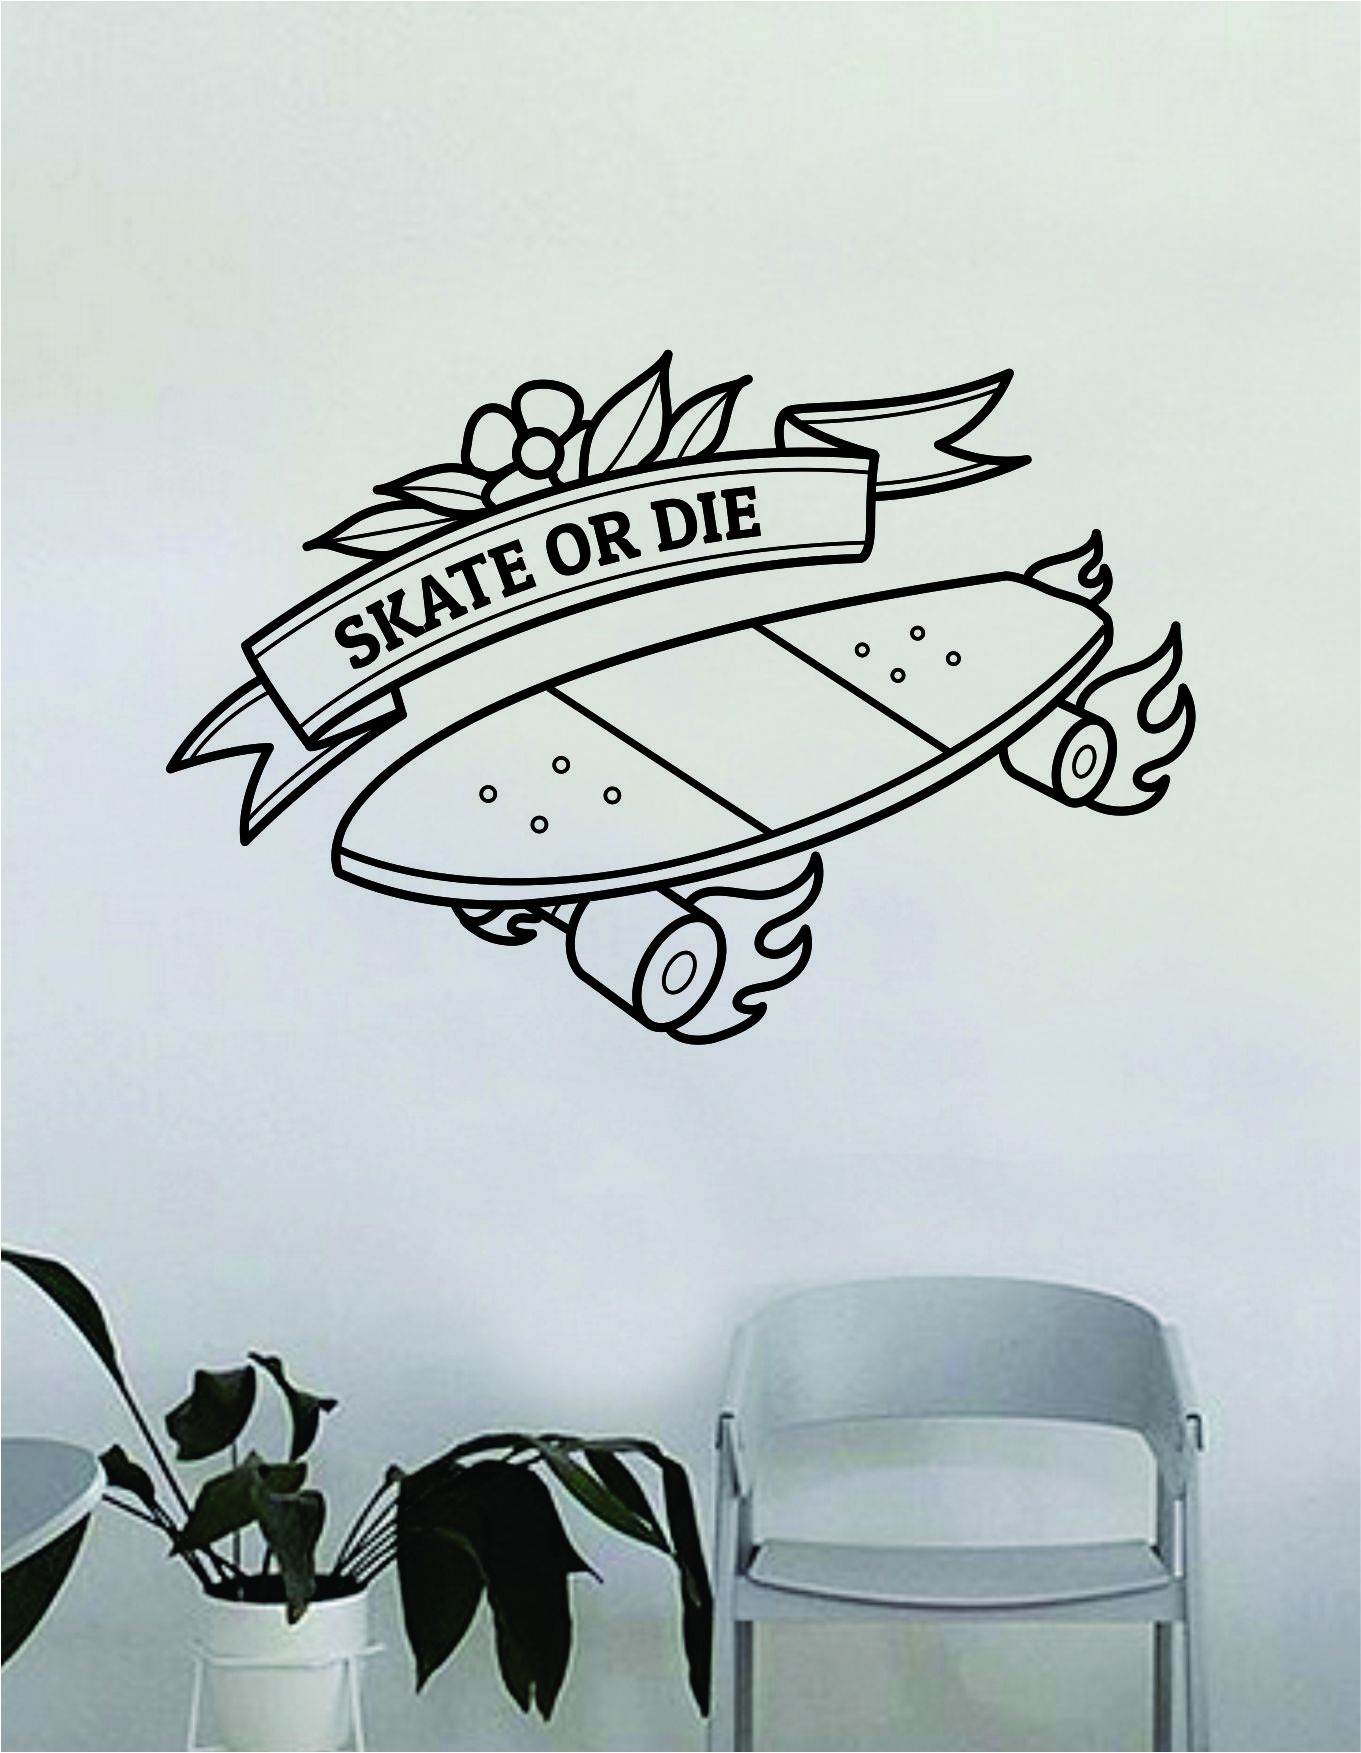 Skate Or Design Wall Decal Decor Decoration Sticker Vinyl Art Bedroom Room Teen Quote Sports Skating Skateboard - red